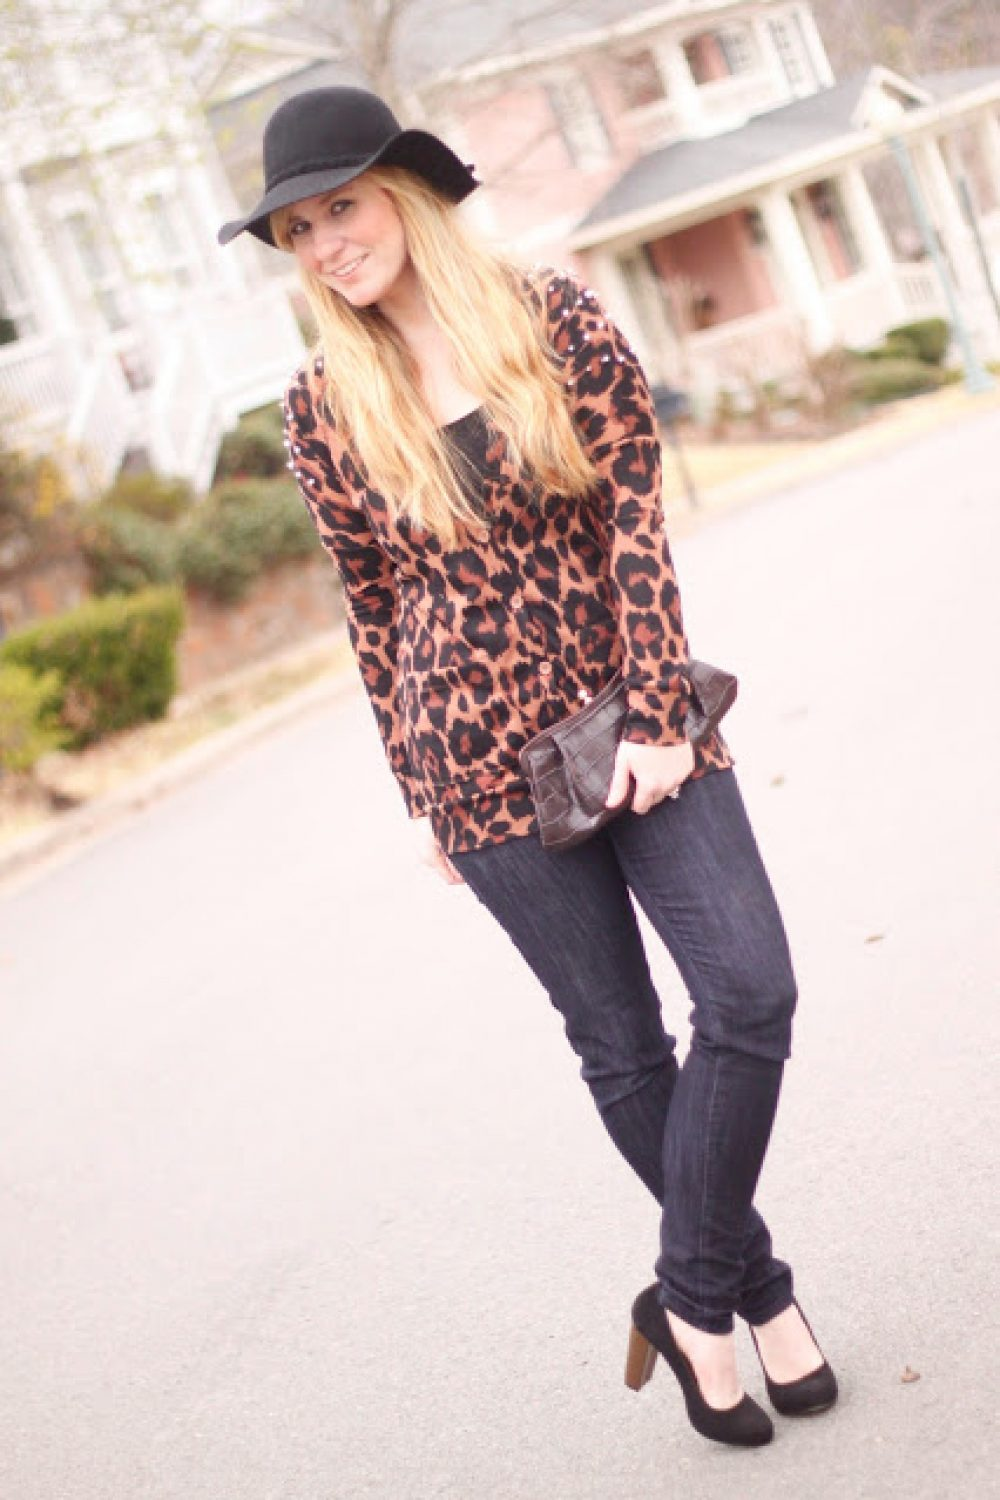 How I Wore My (Stacked) Heels…Wanna Win Some?